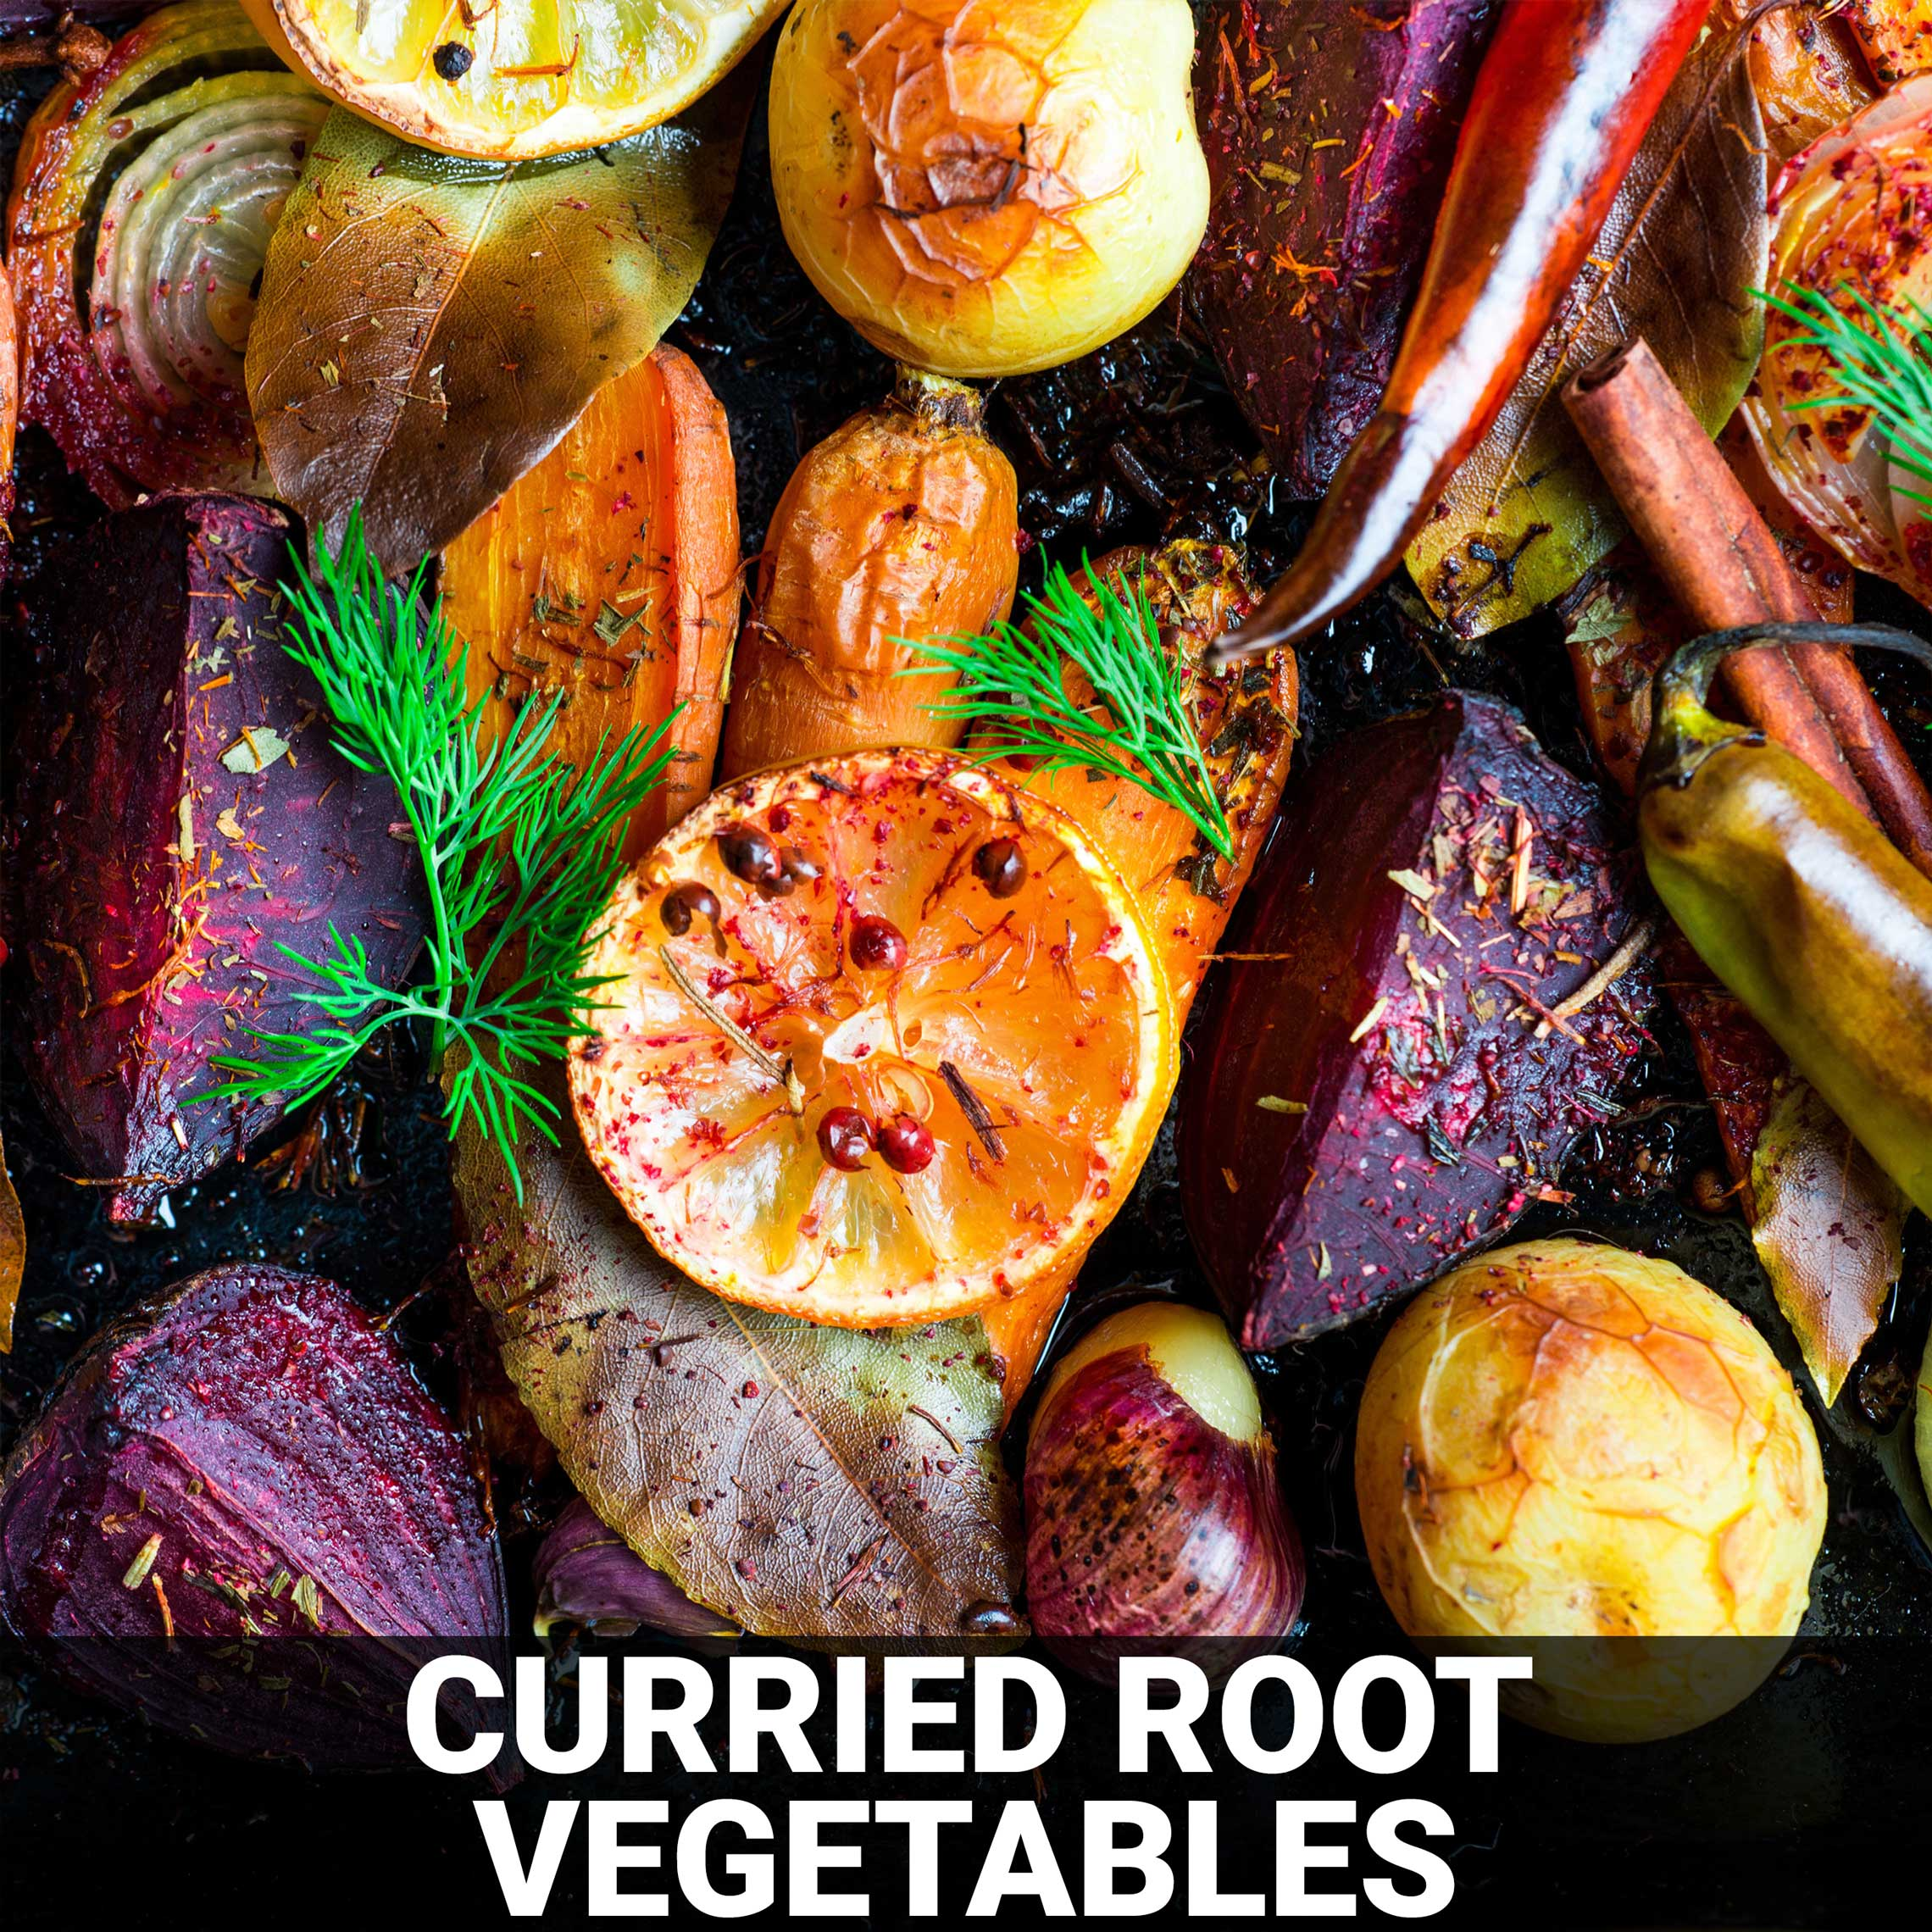 Curried Root Vegetables Recipe - Foods Alive